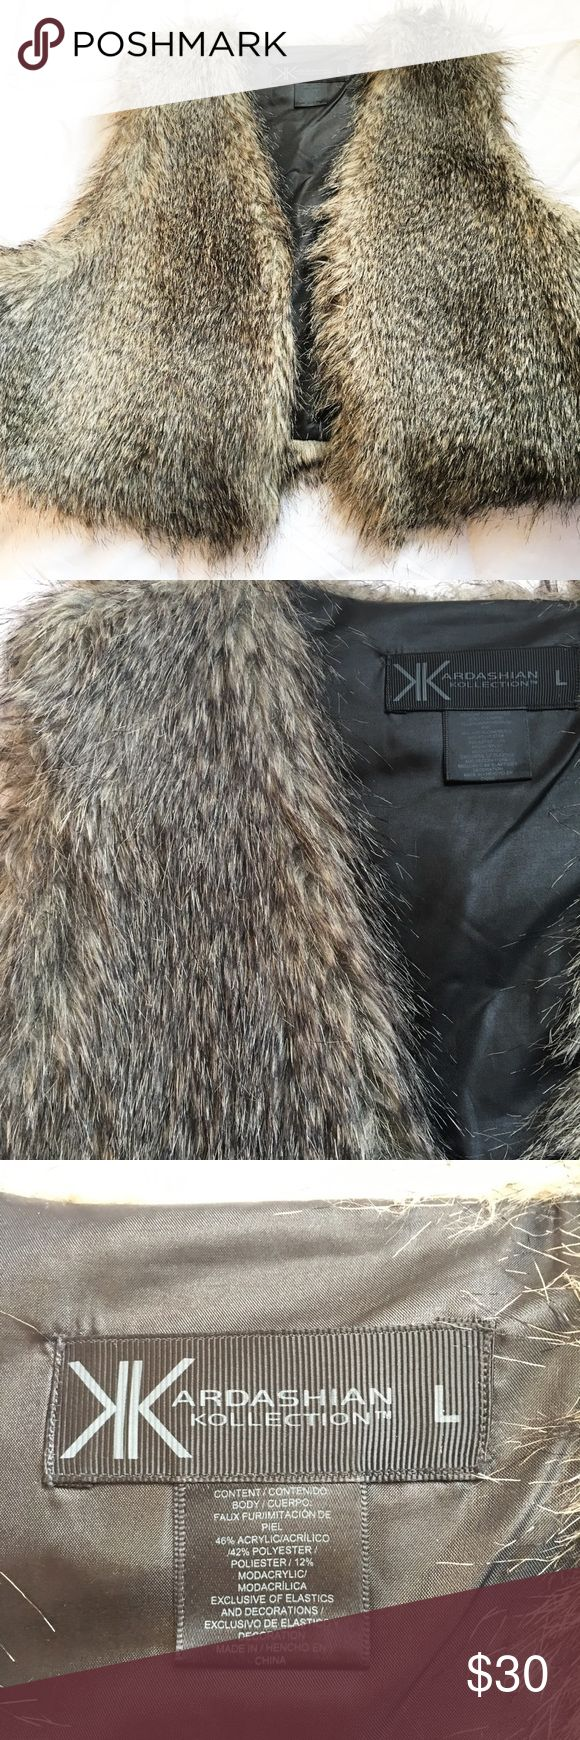 Kardashian Faux Fur Vest Bought from Sears. Only worn once! Super cute fur vest - part of the Kardashian Kollection. FAUX FUR!!                                                                                              ‼️REASONABLE OFFERS ACCEPTED‼️                                       📦BUNDLE AND SAVE📦 Kardashian Kollection Jackets & Coats Vests